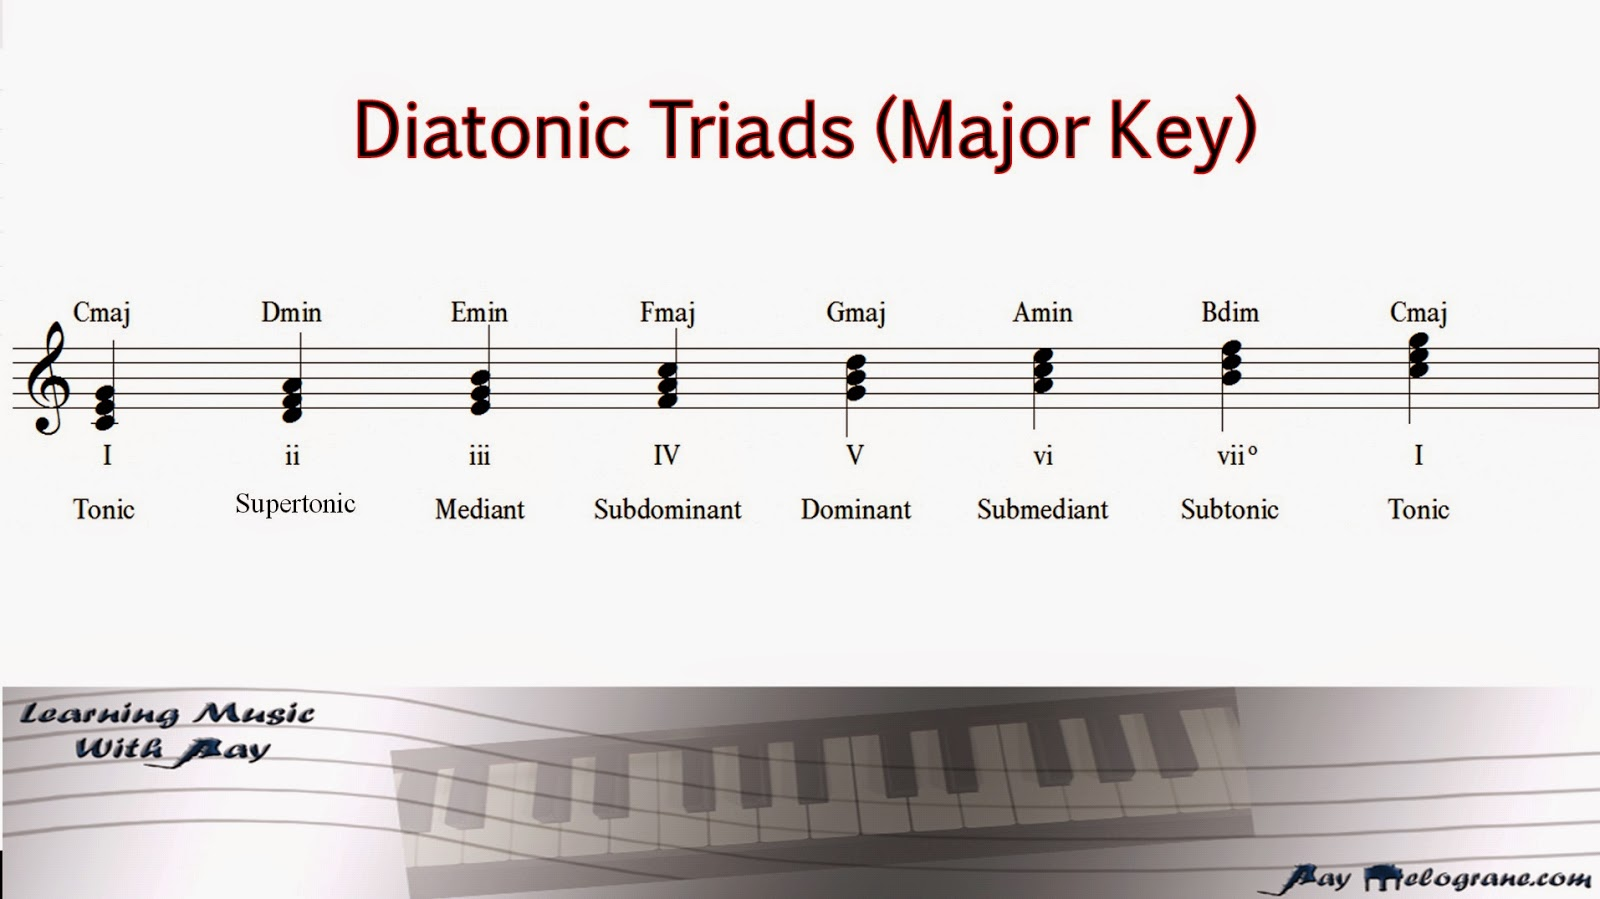 Learning music with ray blog chord progressions a list of the diatonic triads and seventh chords in the key of c major is provided below hexwebz Choice Image